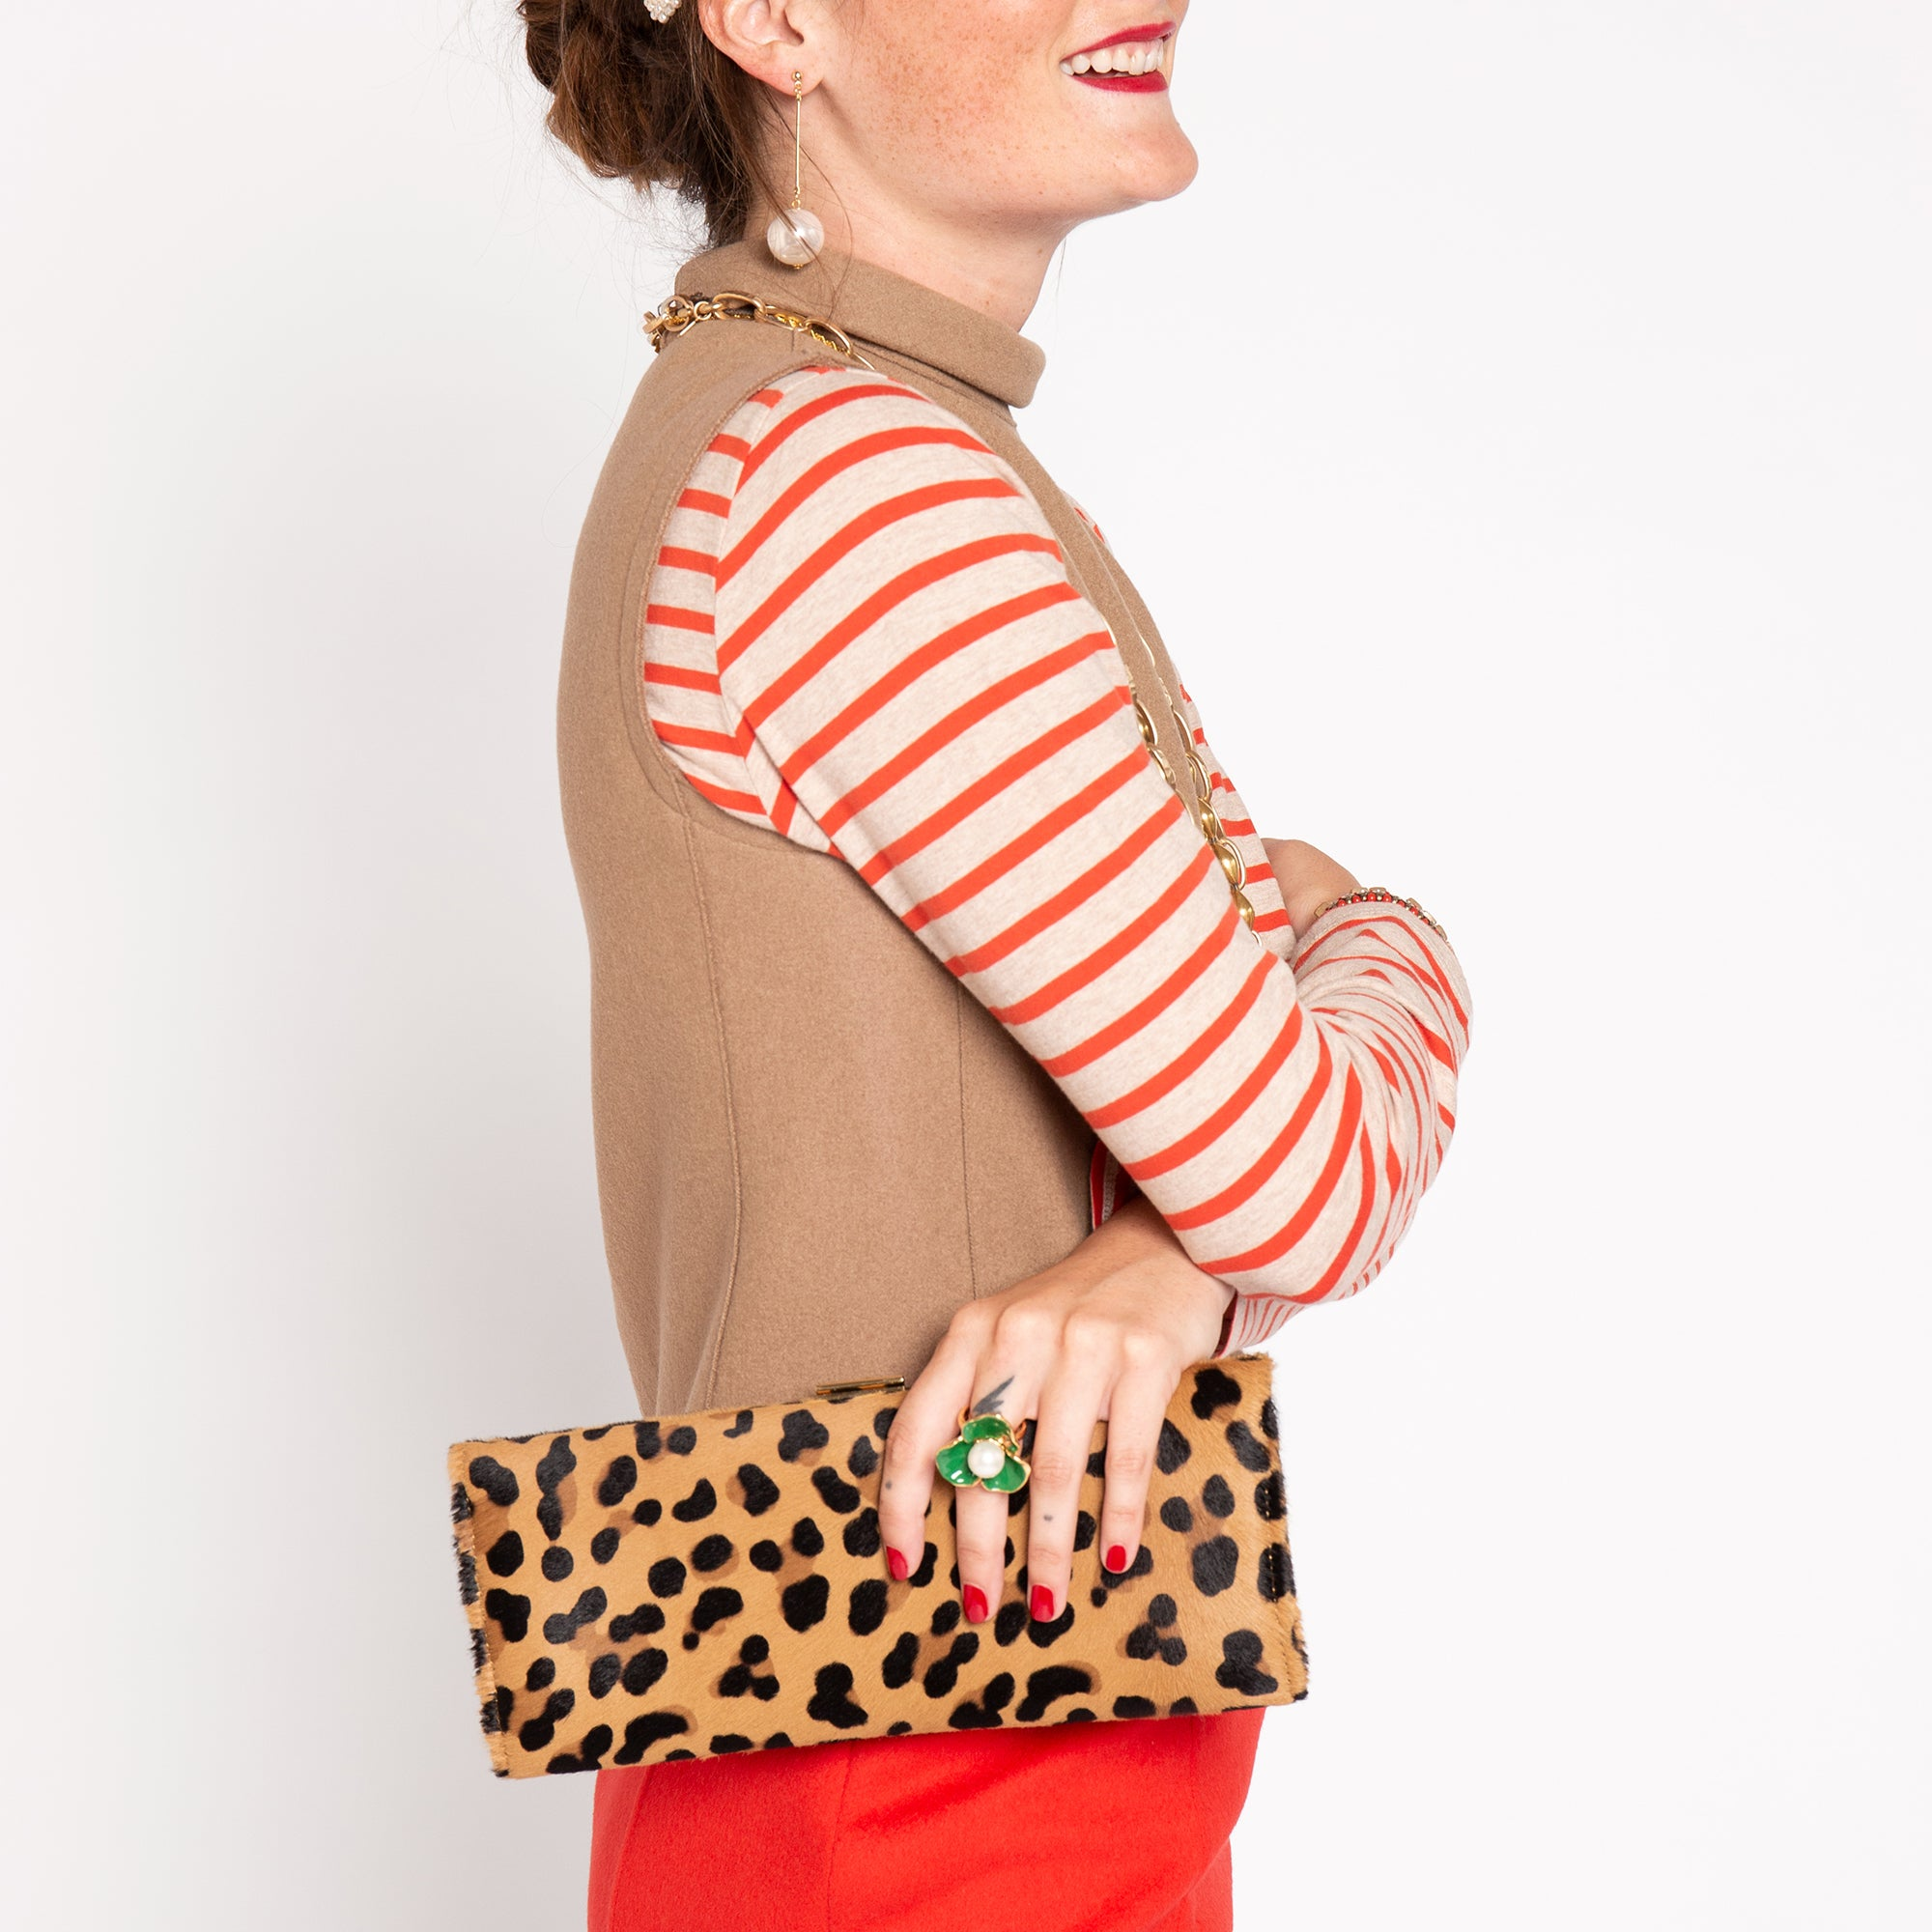 Eleni Handheld Clutch Leopard Printed Haircalf